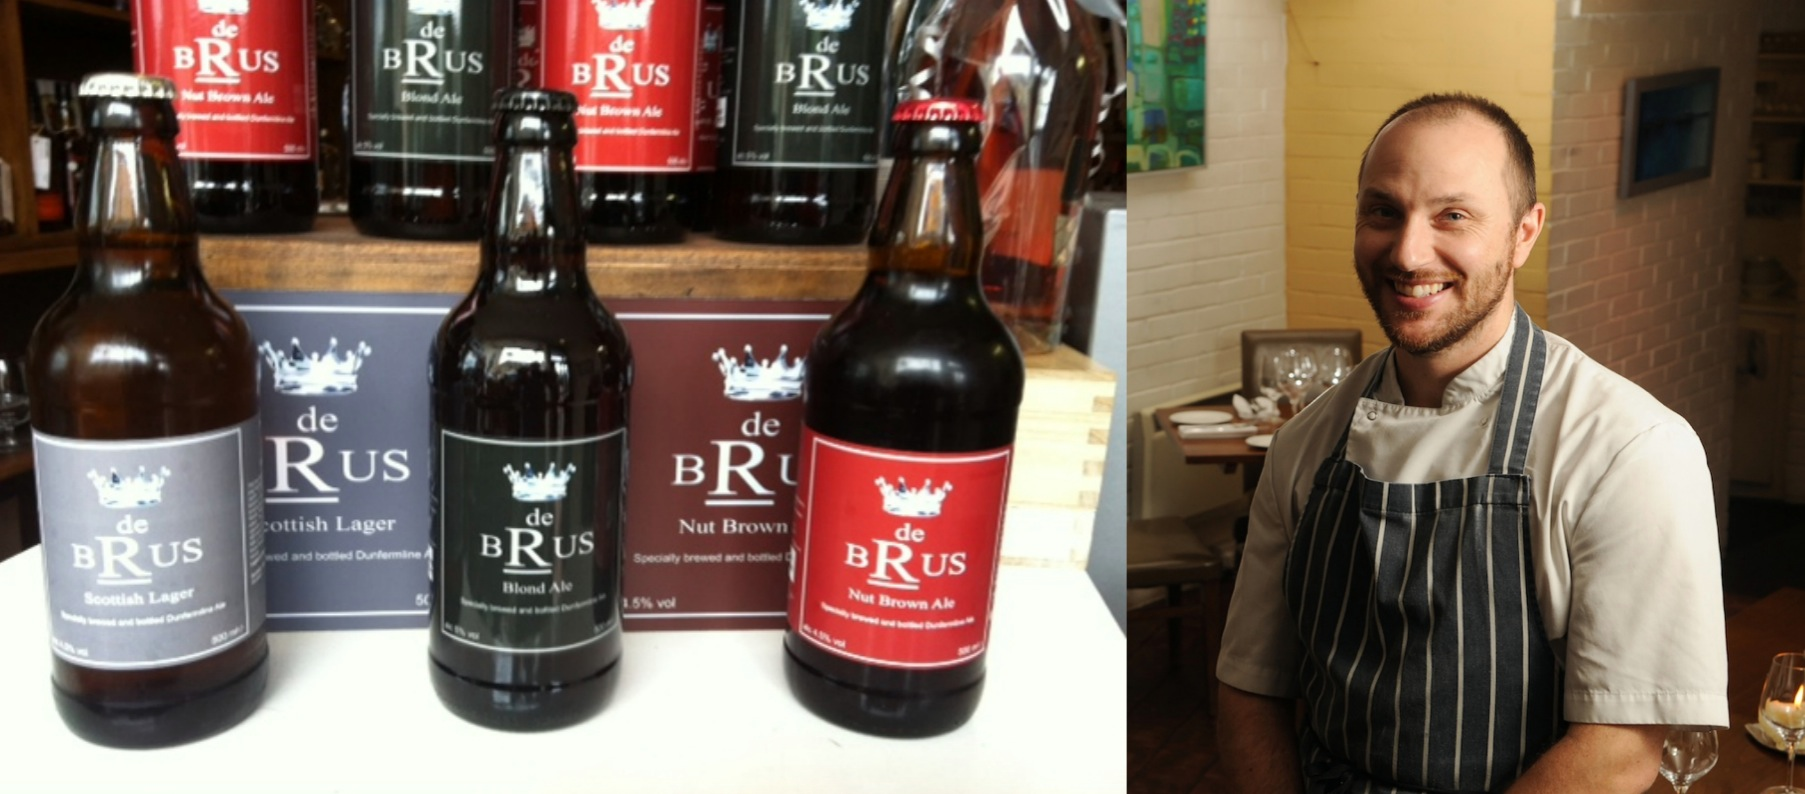 Local beers and Craig's food - a match made in heaven!